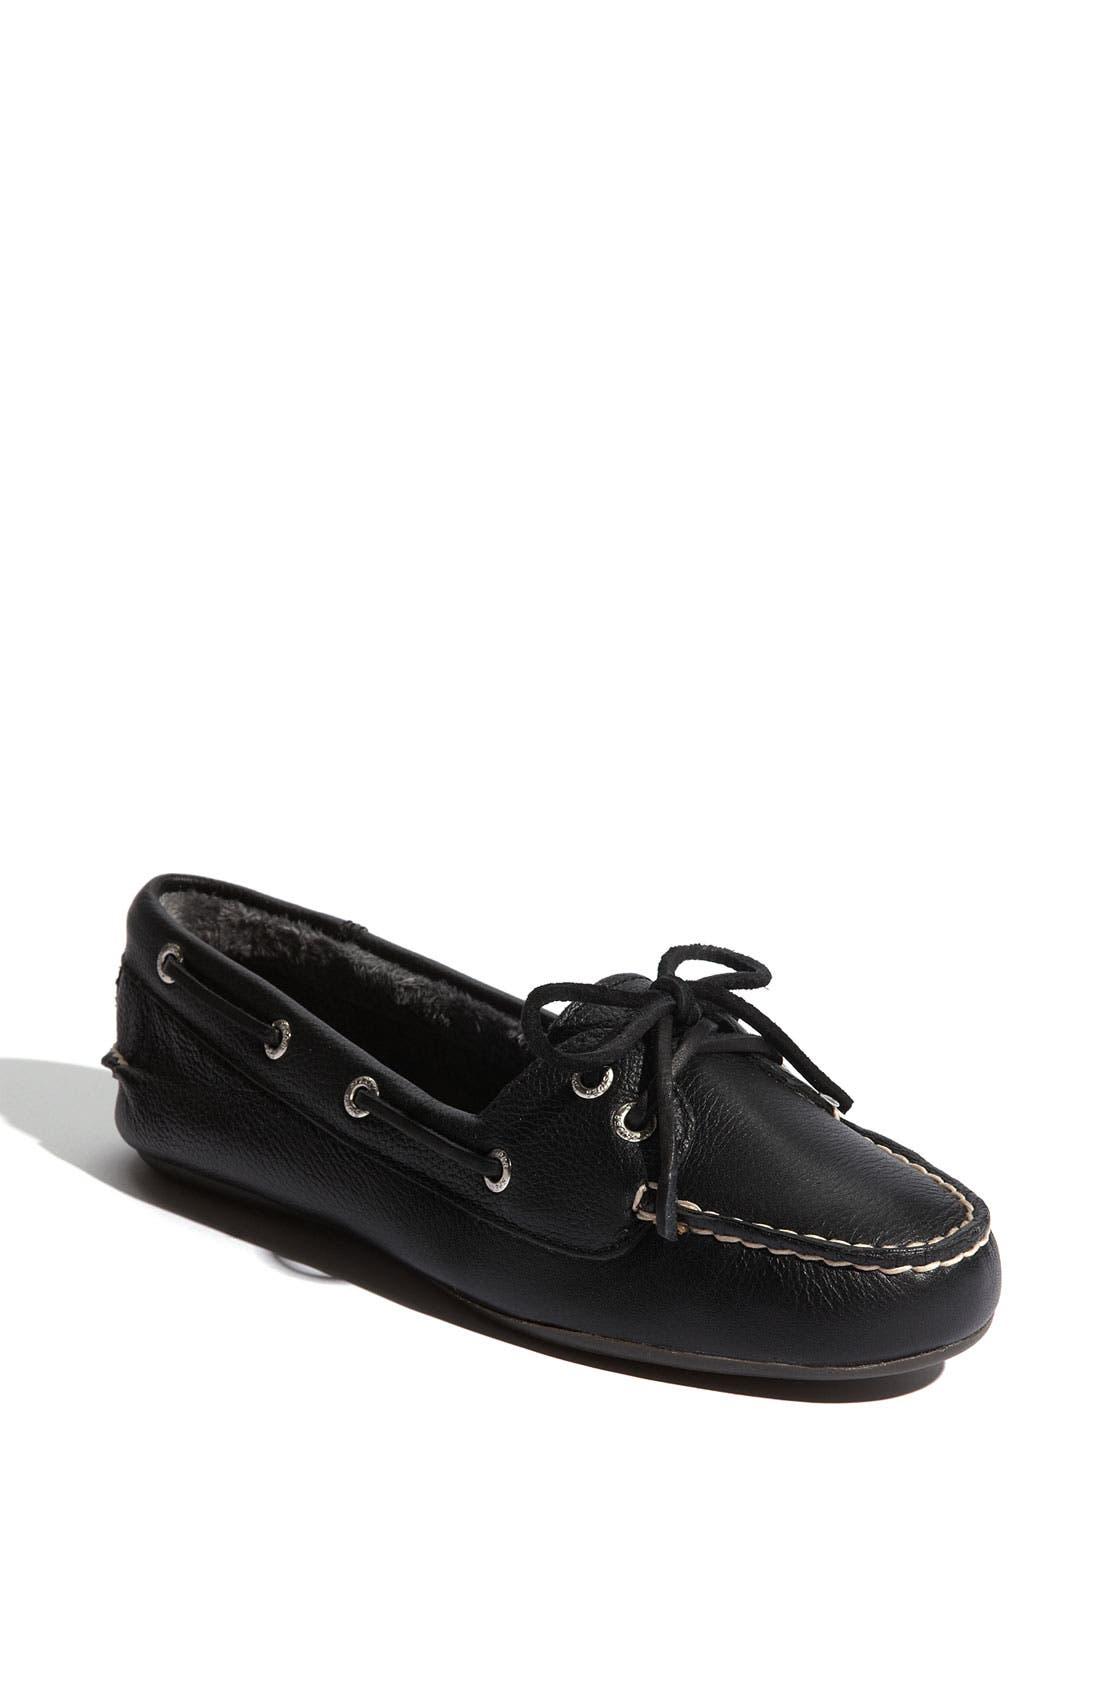 Top-Sider<sup>®</sup> 'Skiff' Moccasin Slip-On,                             Main thumbnail 1, color,                             001